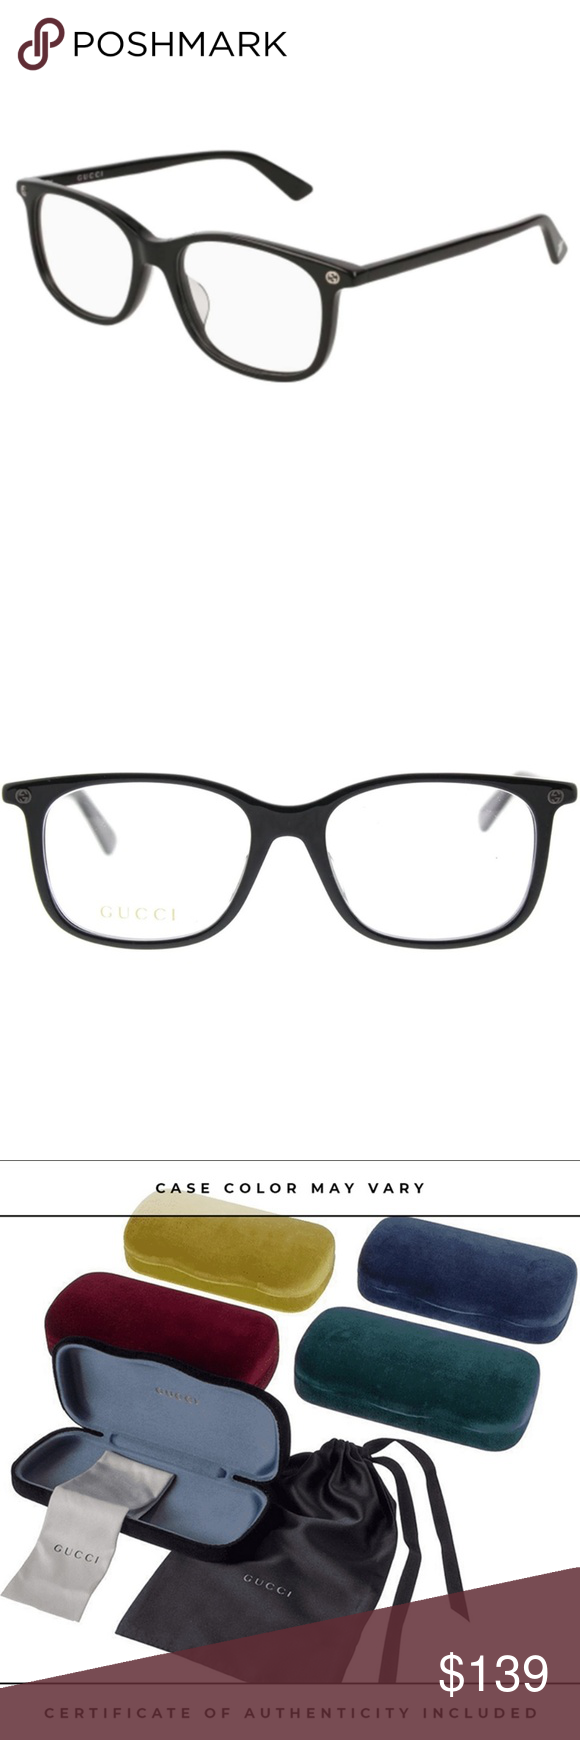 b9a7c1d61e51d Gucci Eyeglasses Black w Demo Lens Buy with confidence from an established  dealer since 2005